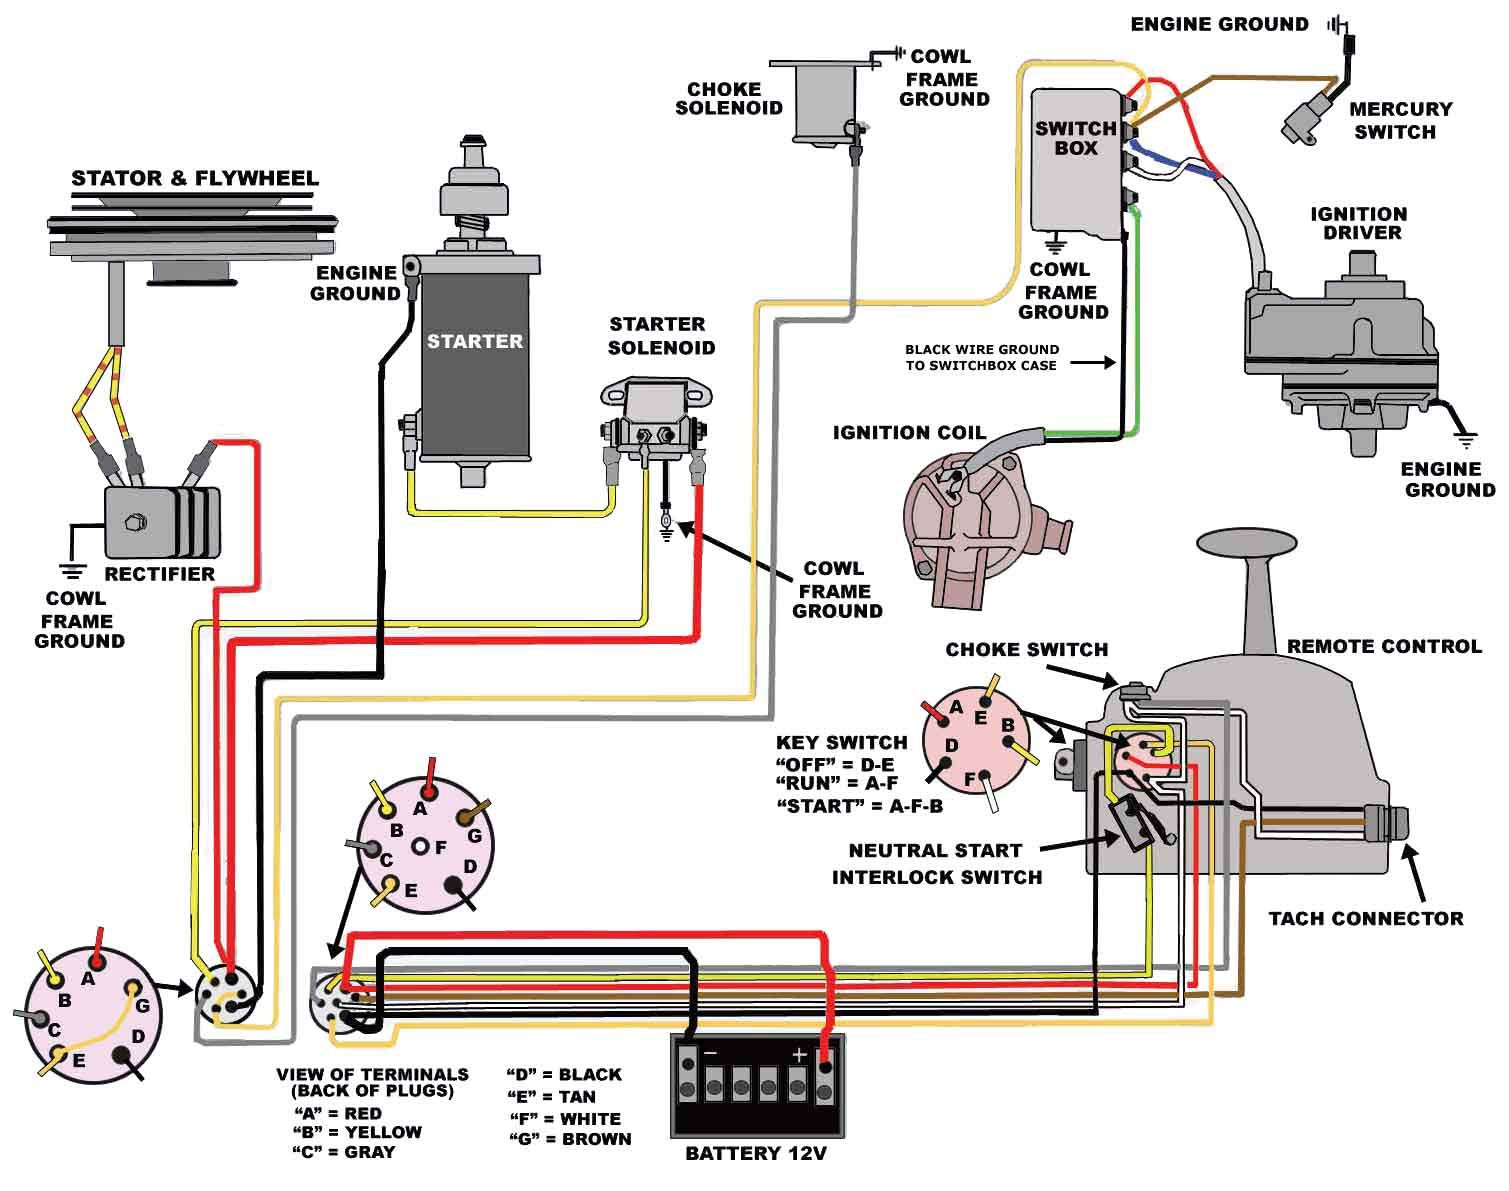 13cfb2d962bcd0c03103625817b7d51d mercury outboard wiring diagram diagram pinterest mercury boat ignition switch wiring diagram at webbmarketing.co